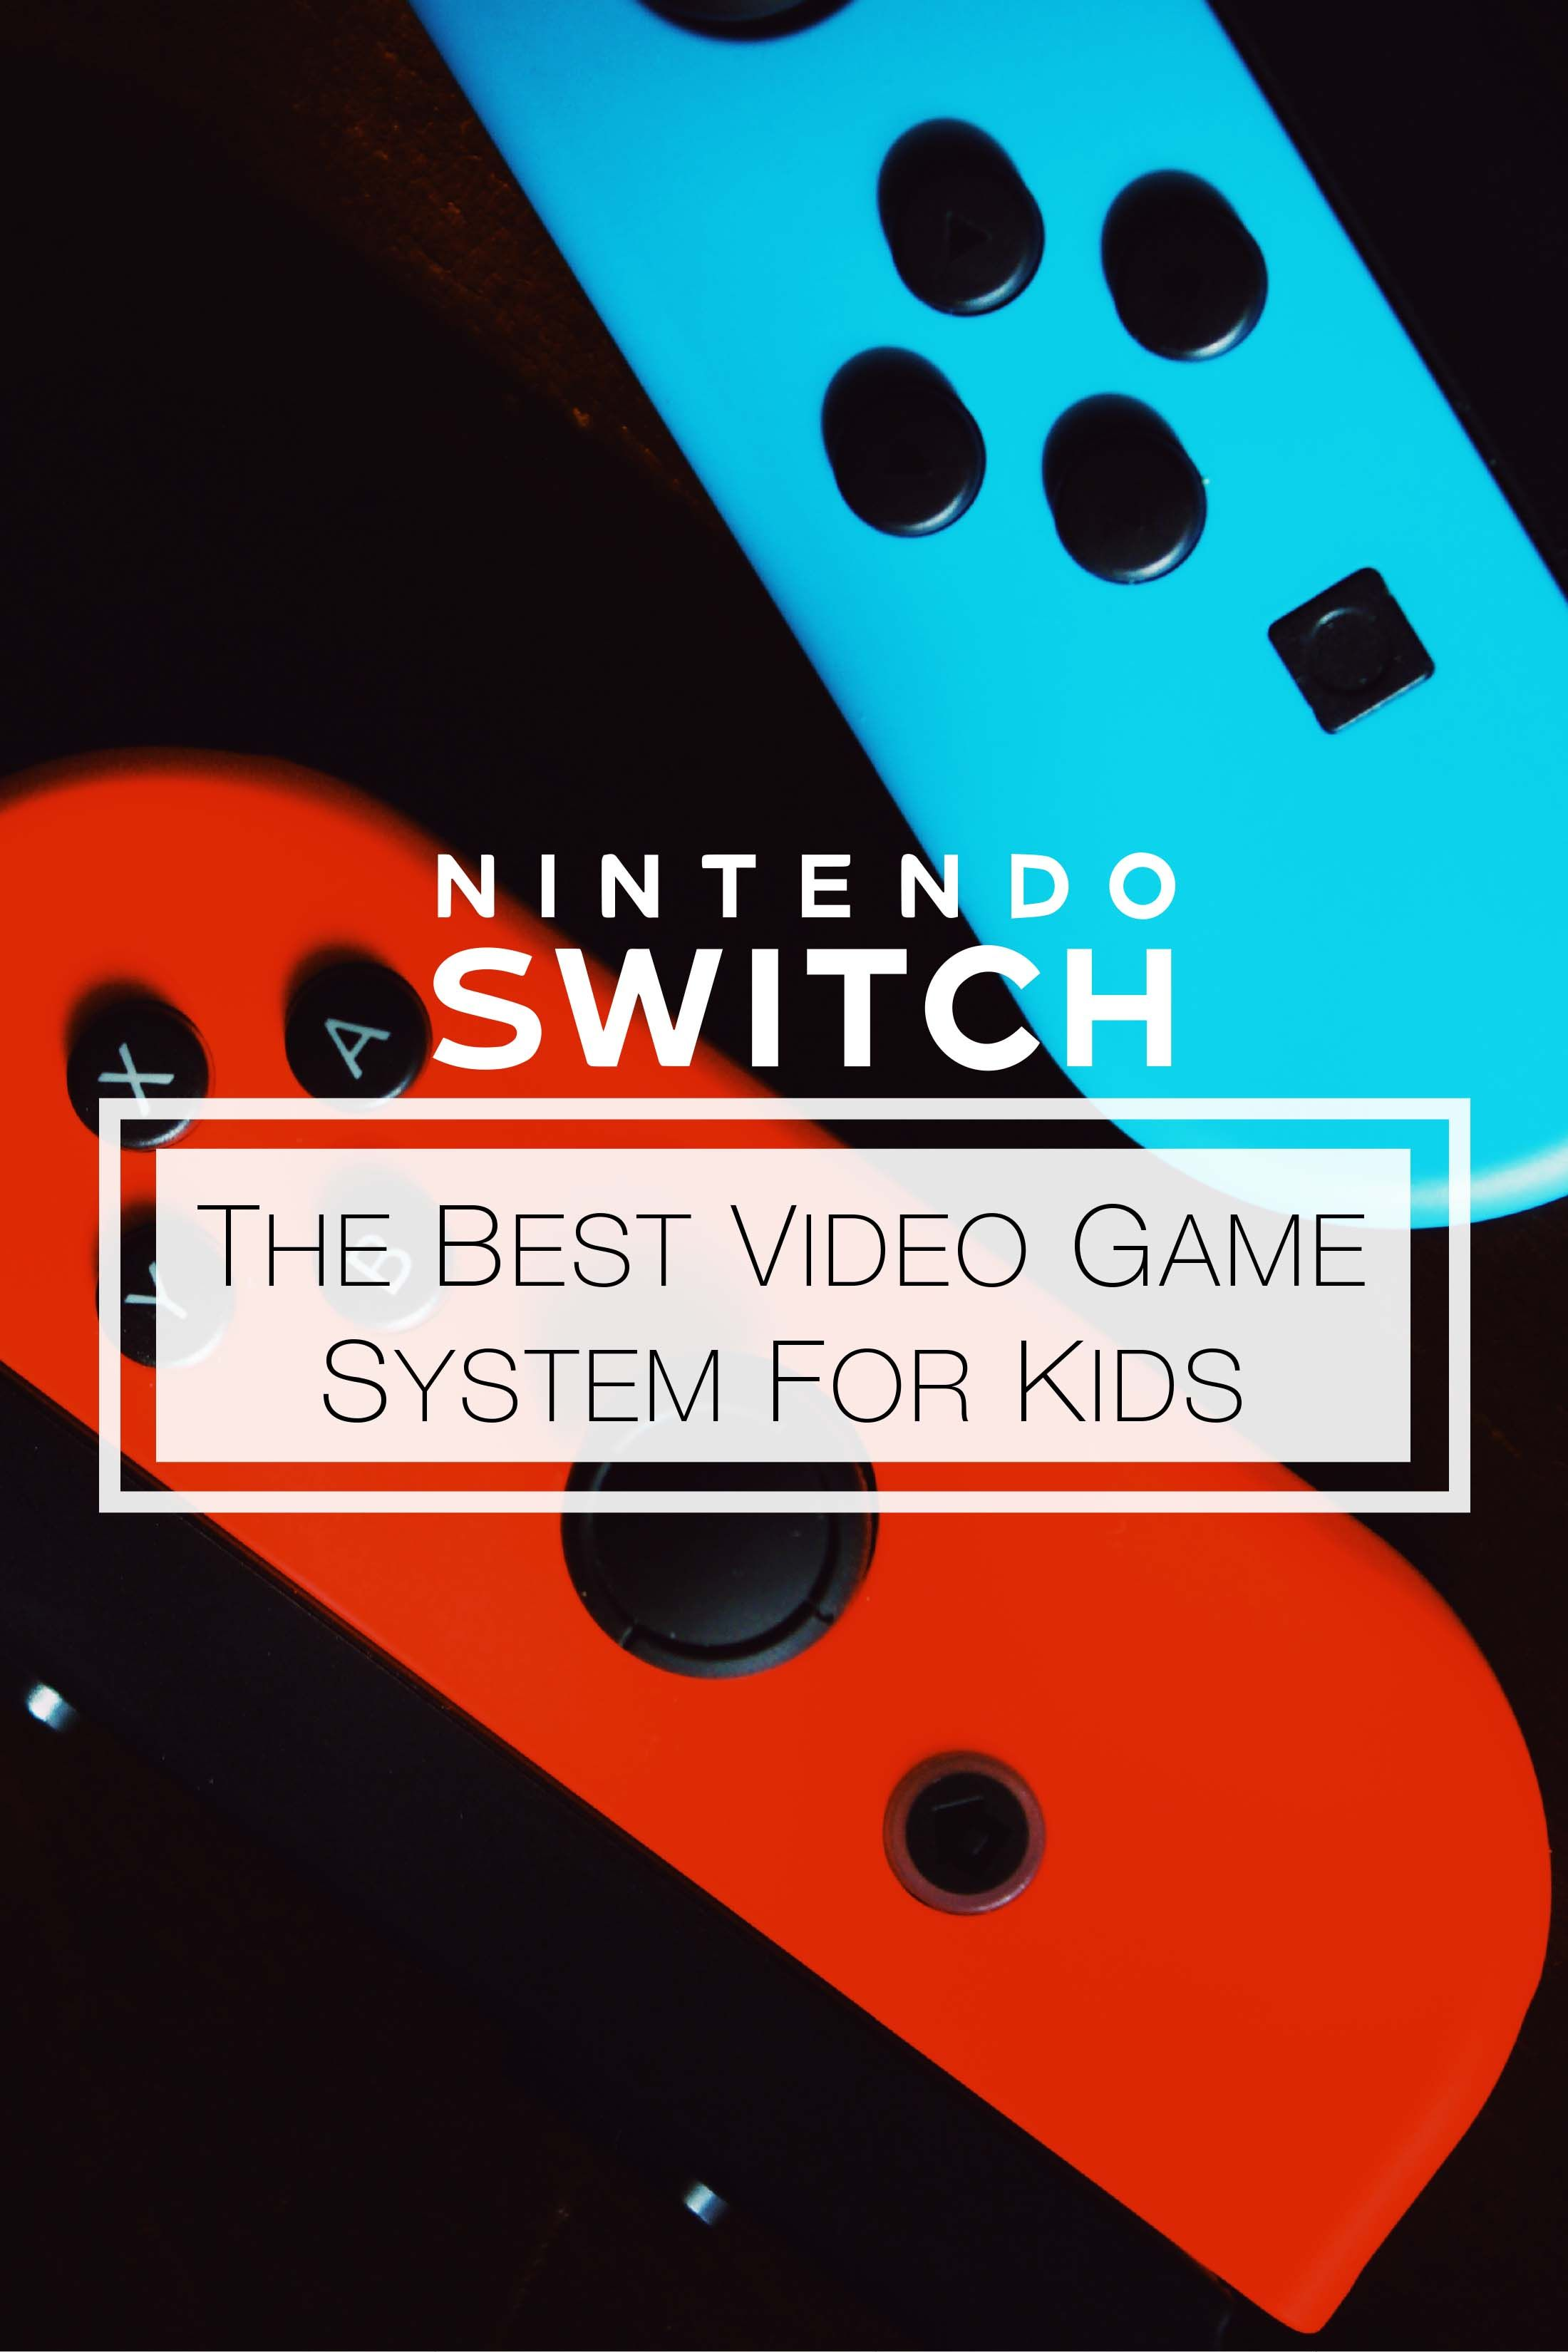 The Nintendo Switch The Best Video Game System for Kids